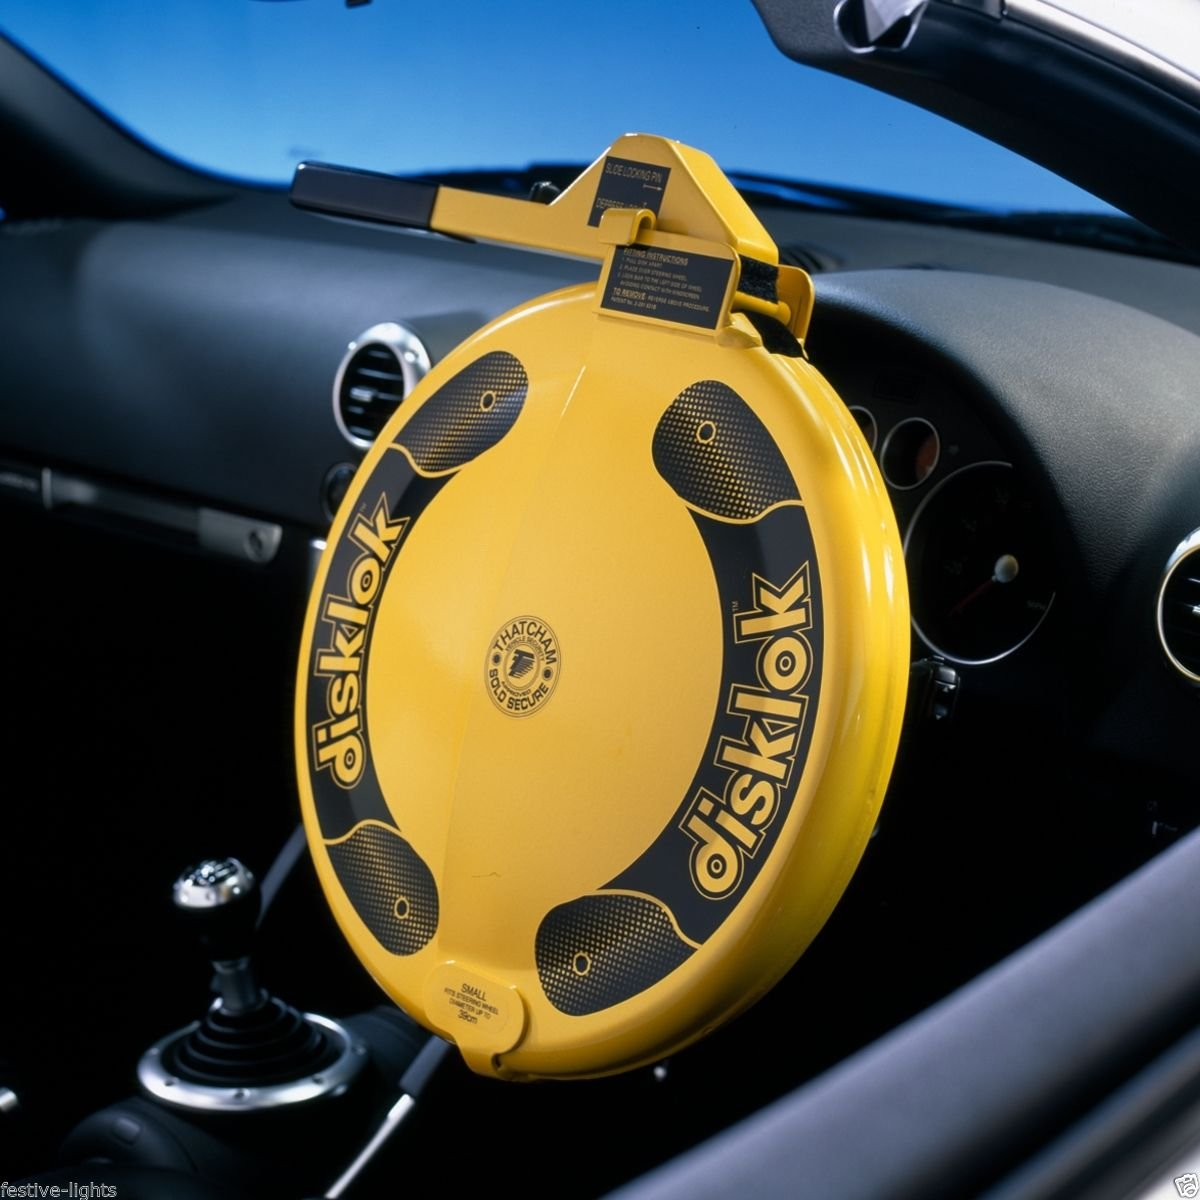 Disklok Yellow Steering Wheel Full Cover Security Lock Thatcham Approved (Small, 35cm - 39cm)